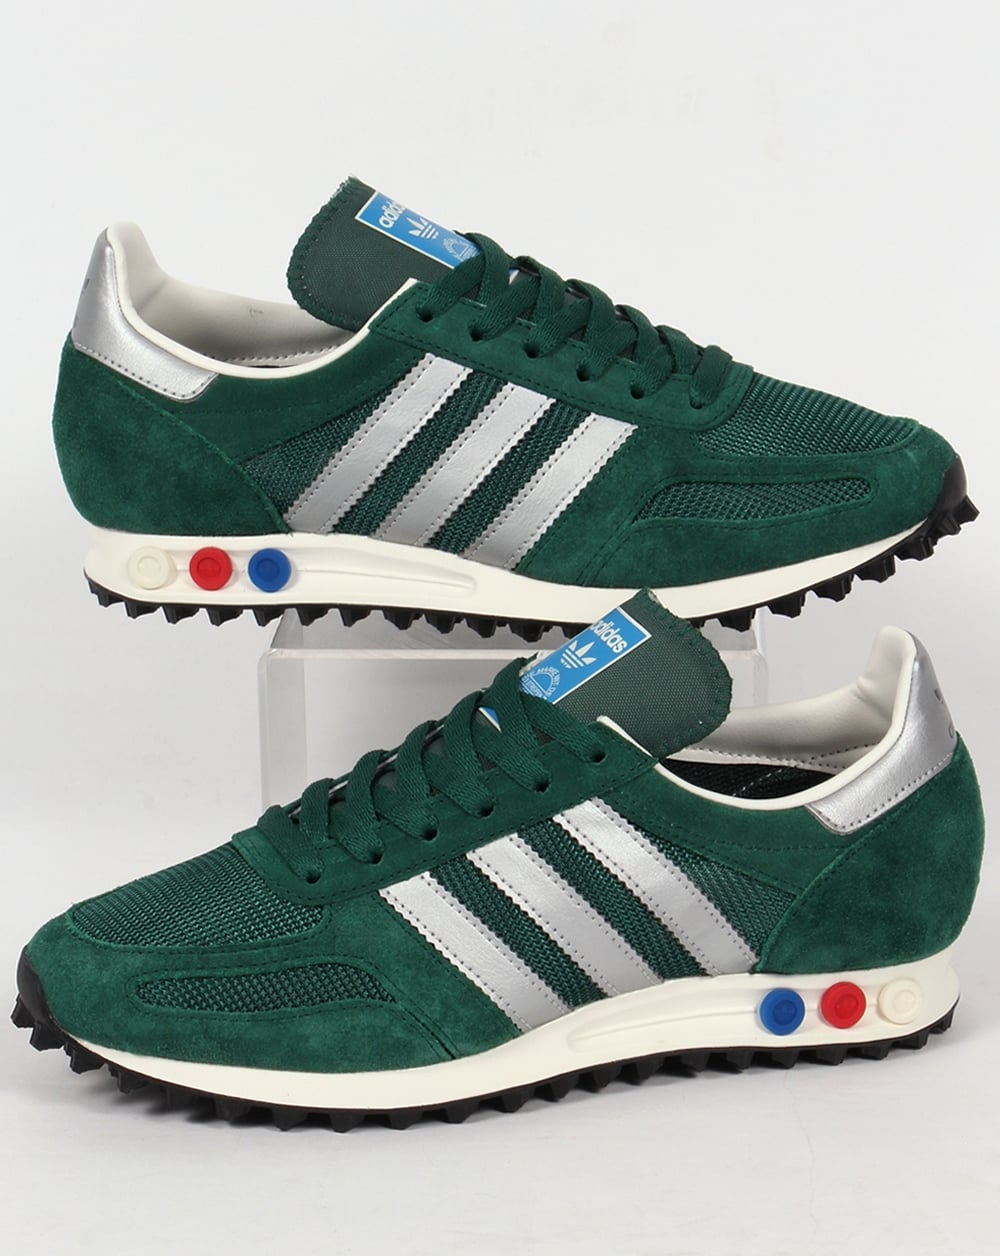 adidas la trainer og trainers green silver sneakers. Black Bedroom Furniture Sets. Home Design Ideas